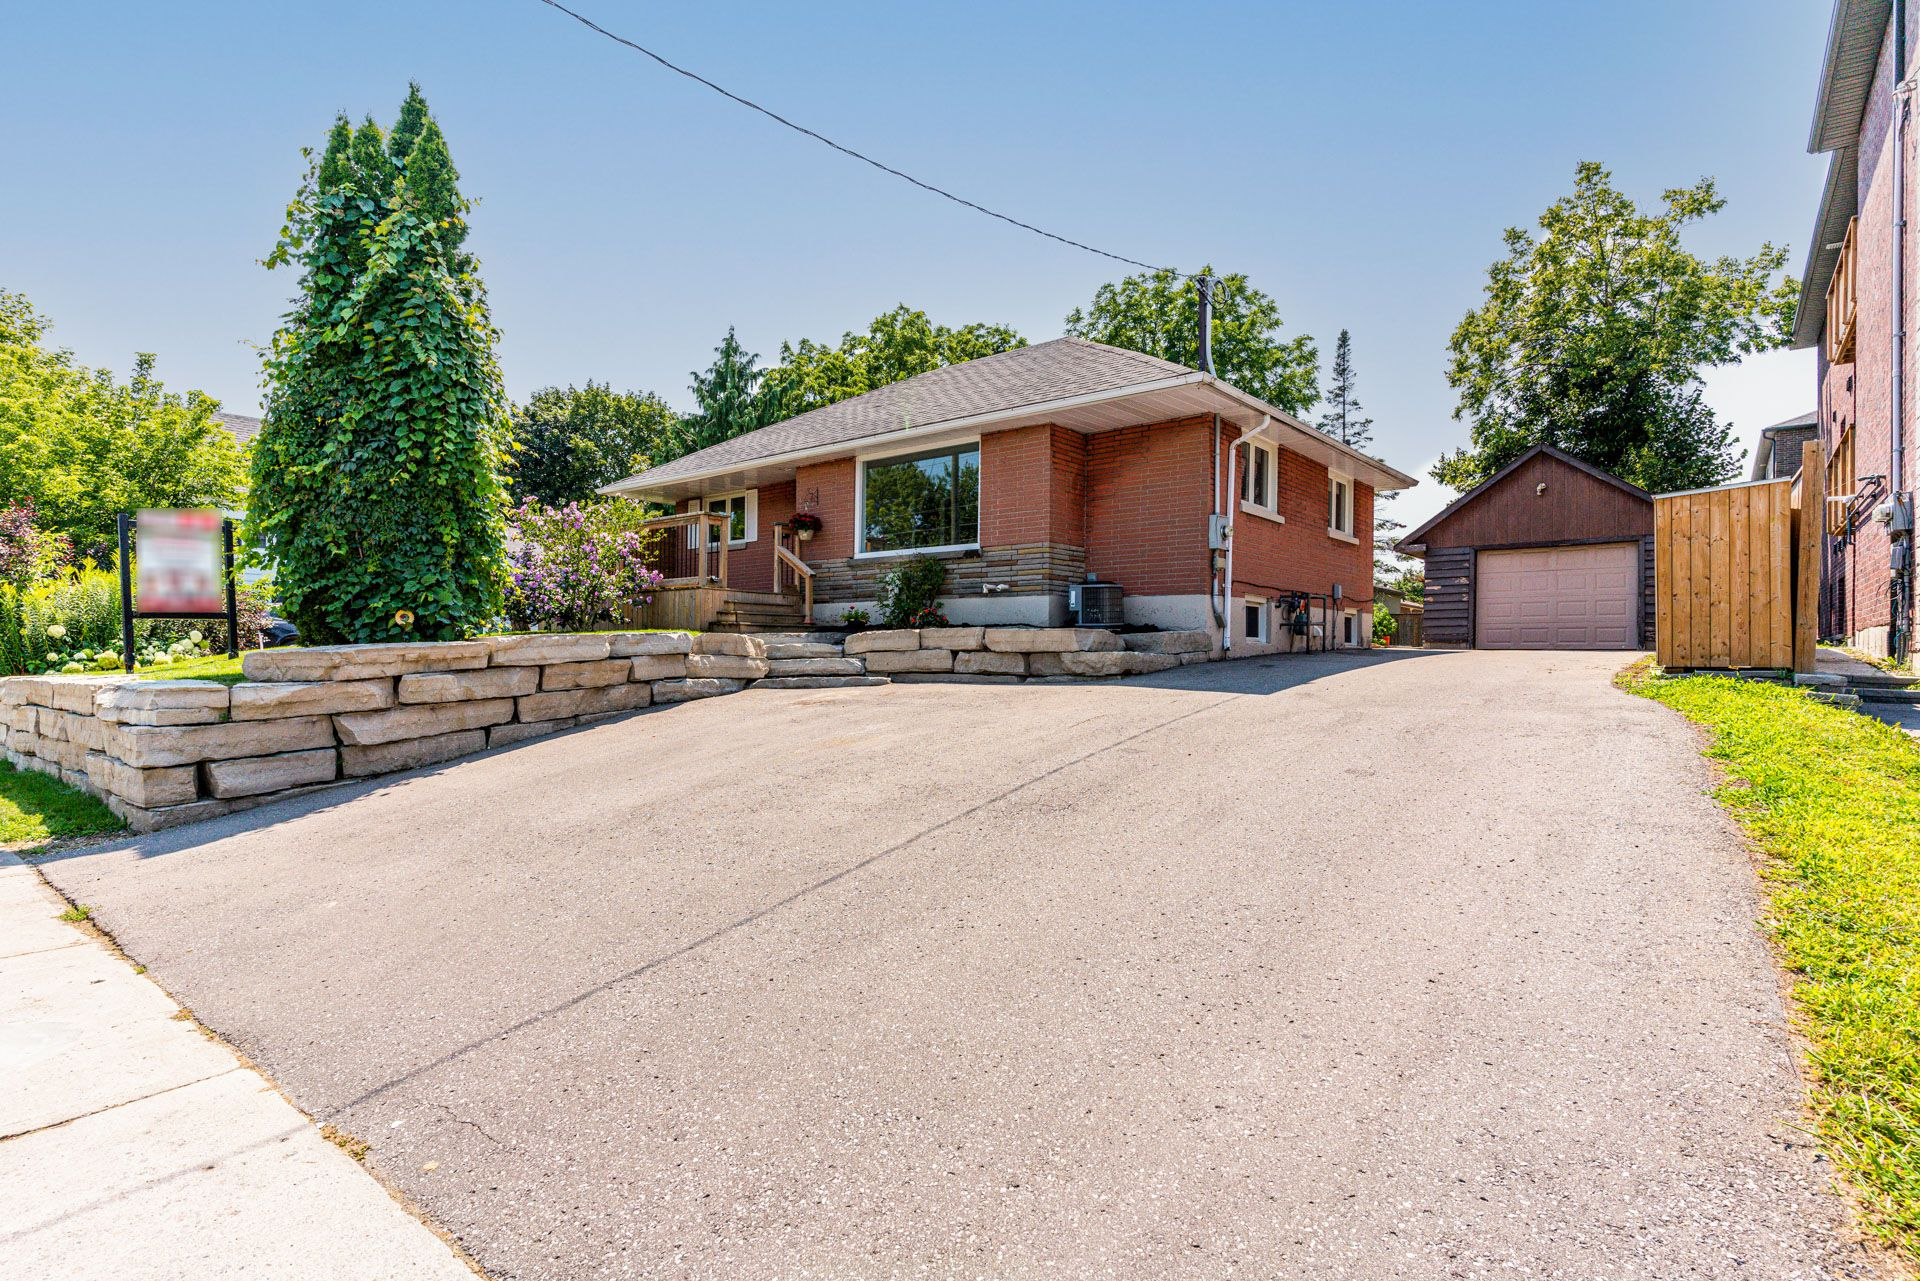 Main Photo: 94 Farewell Street in Oshawa: Donevan Freehold for sale